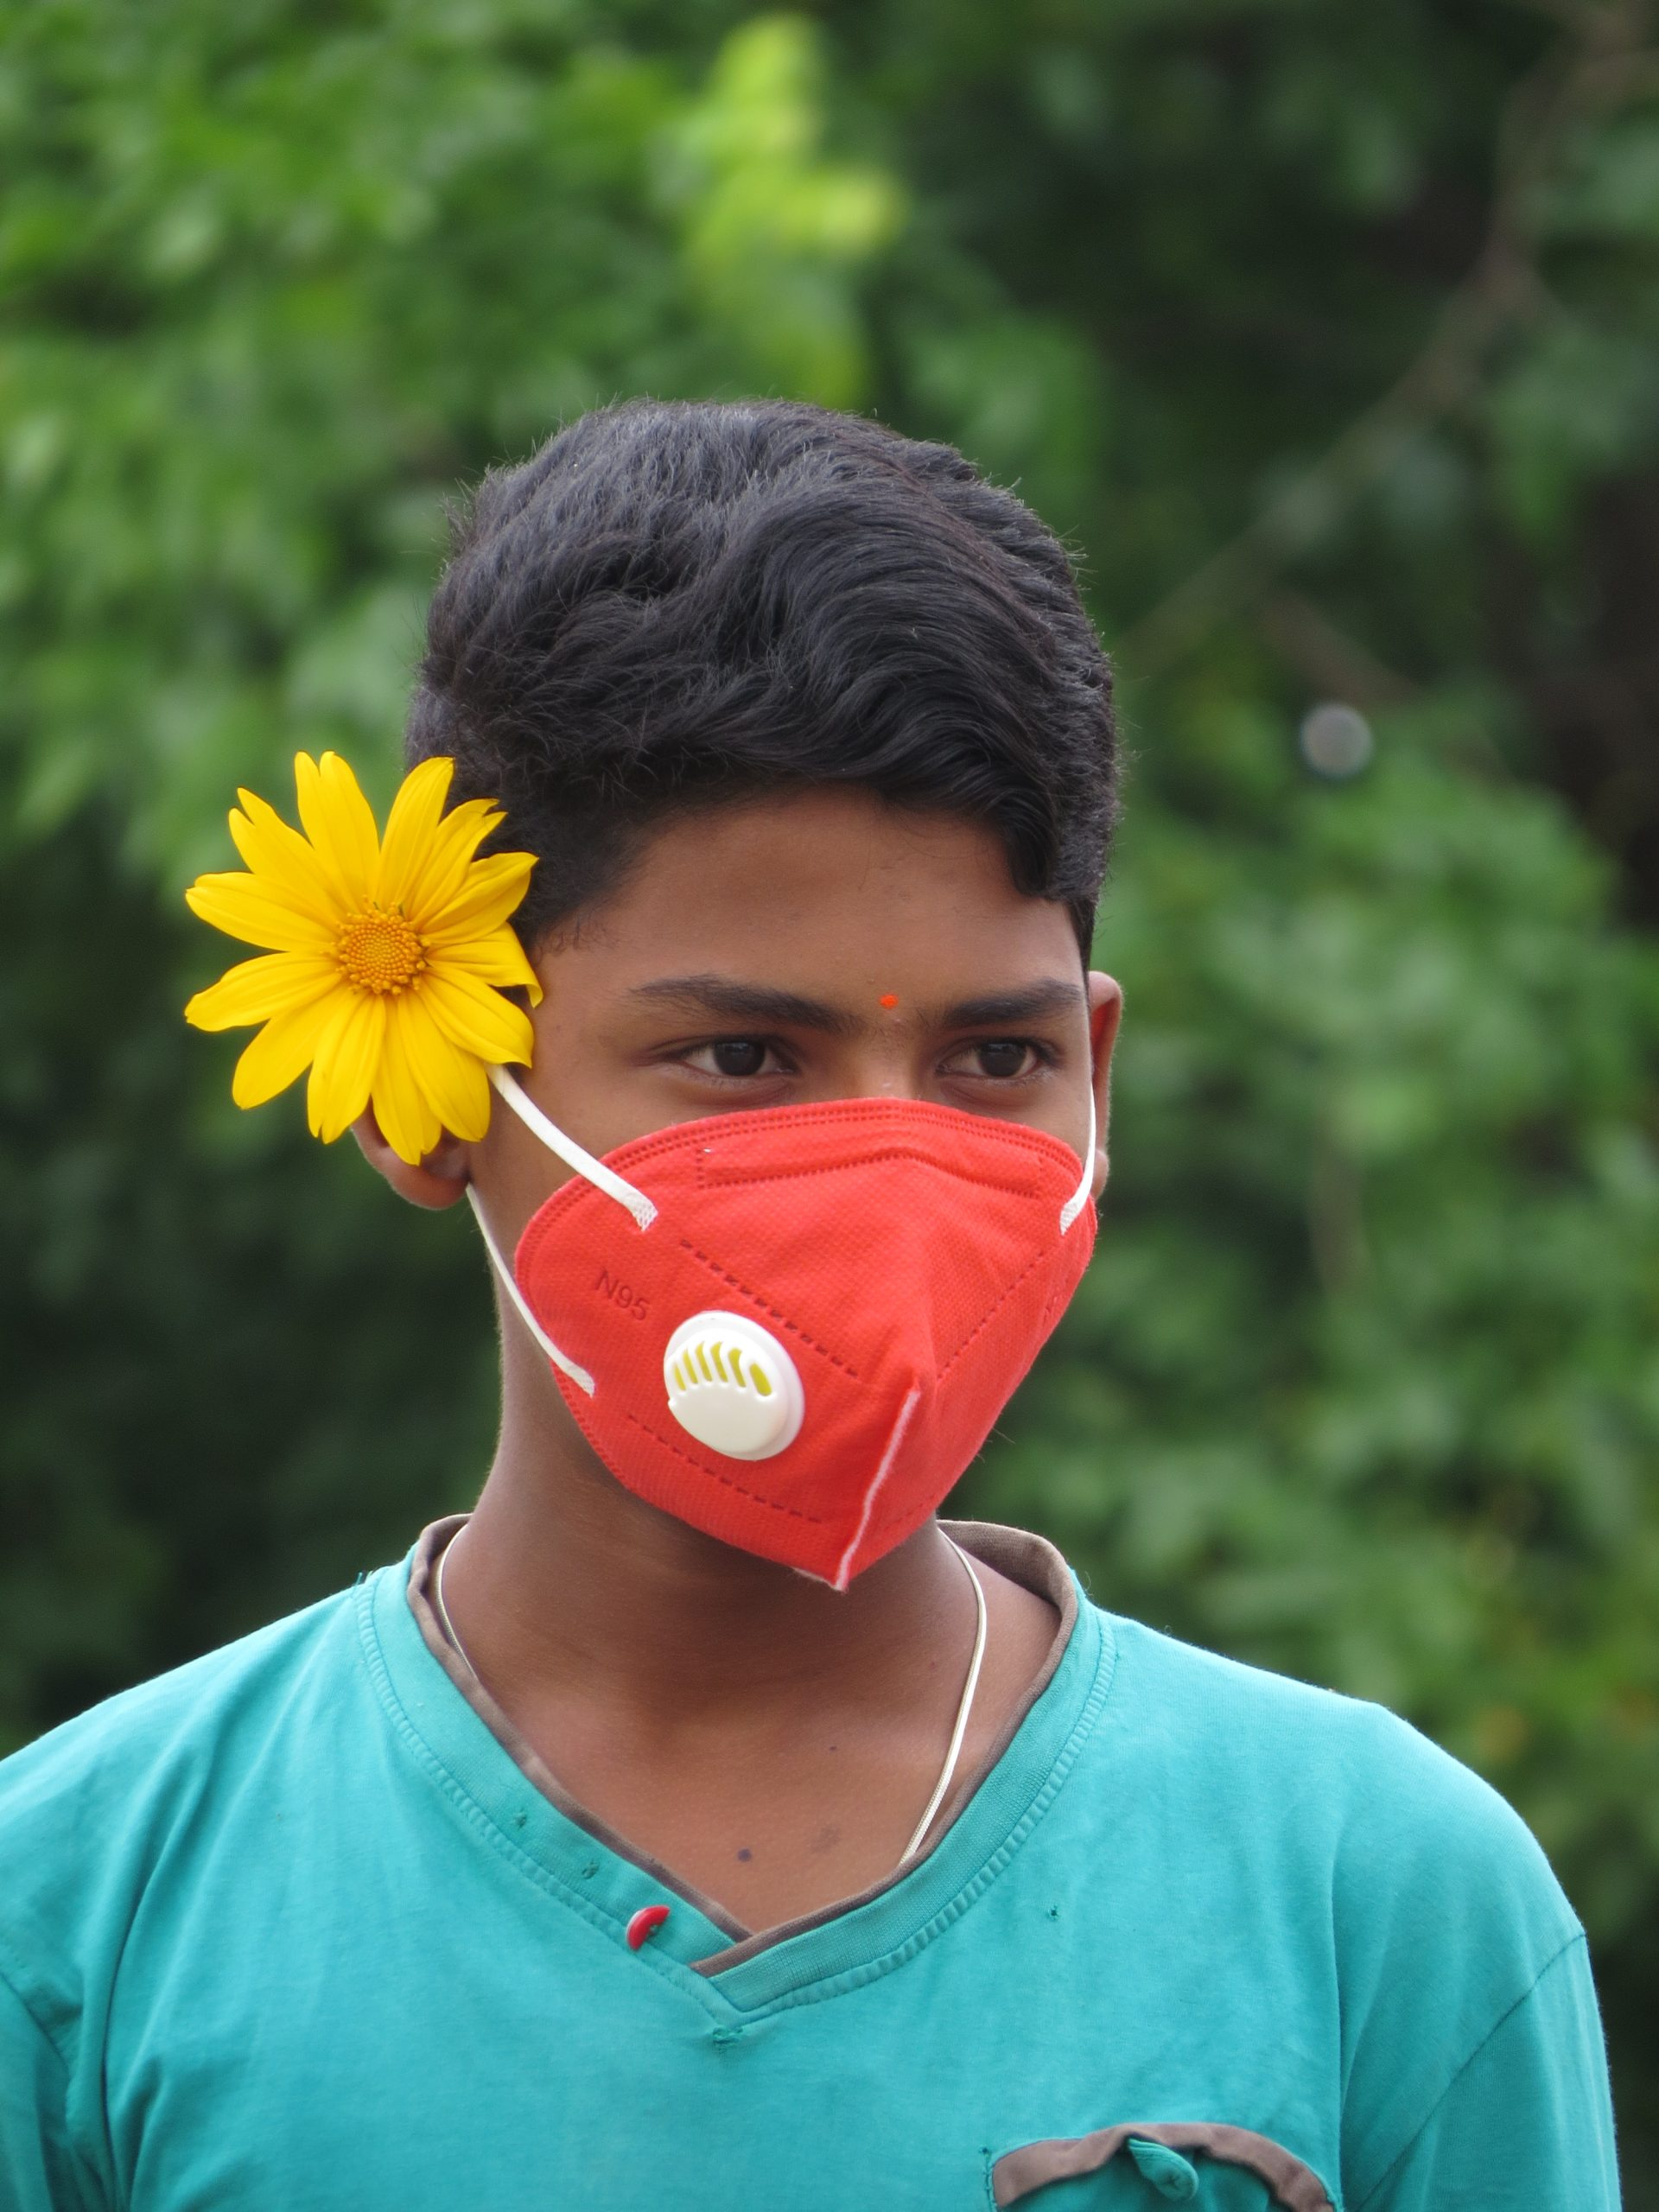 A boy with face cover and a flower